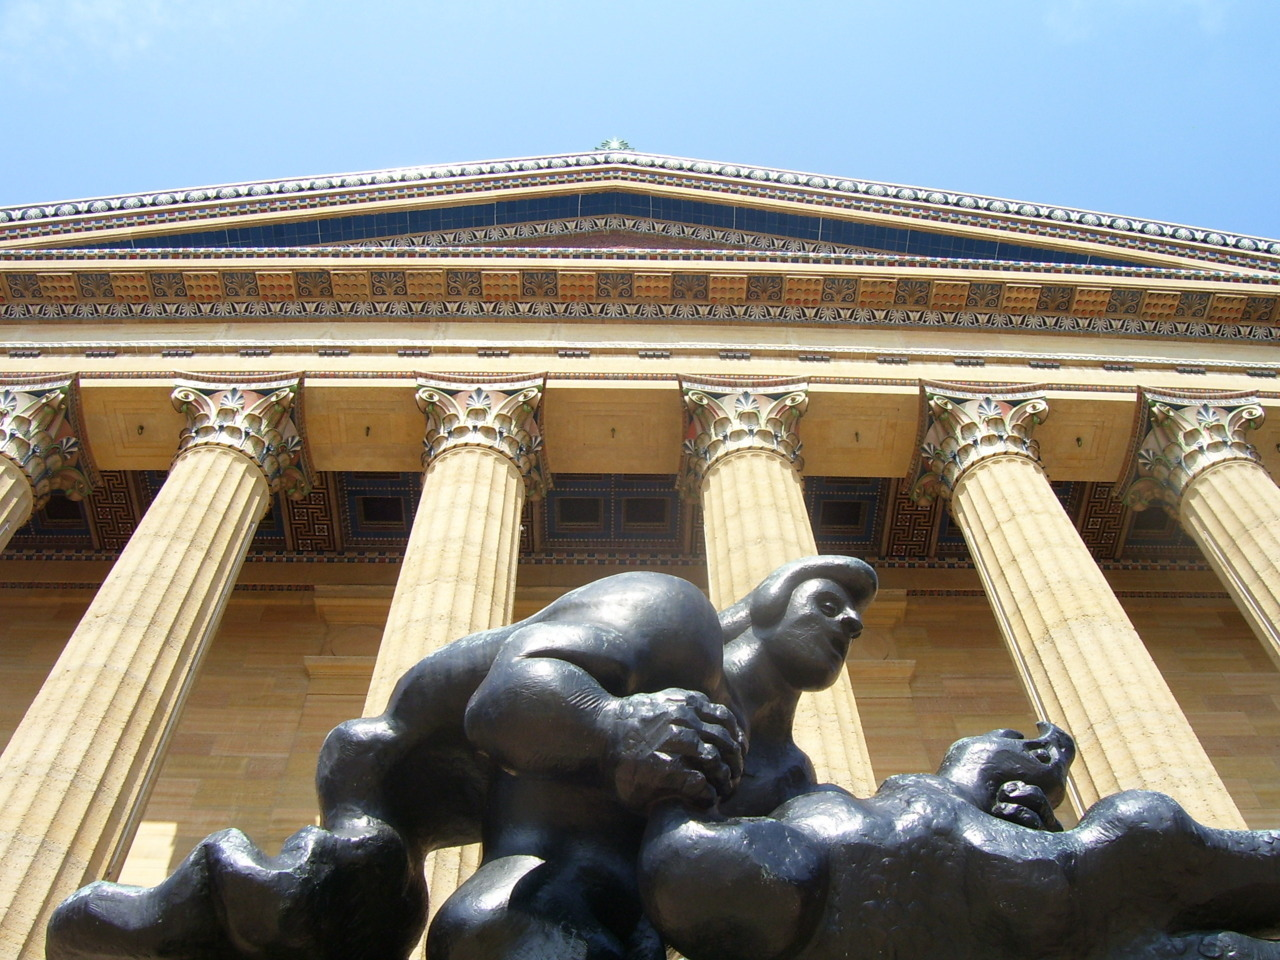 Taken at the Philadelphia Museum of Art in 2009.